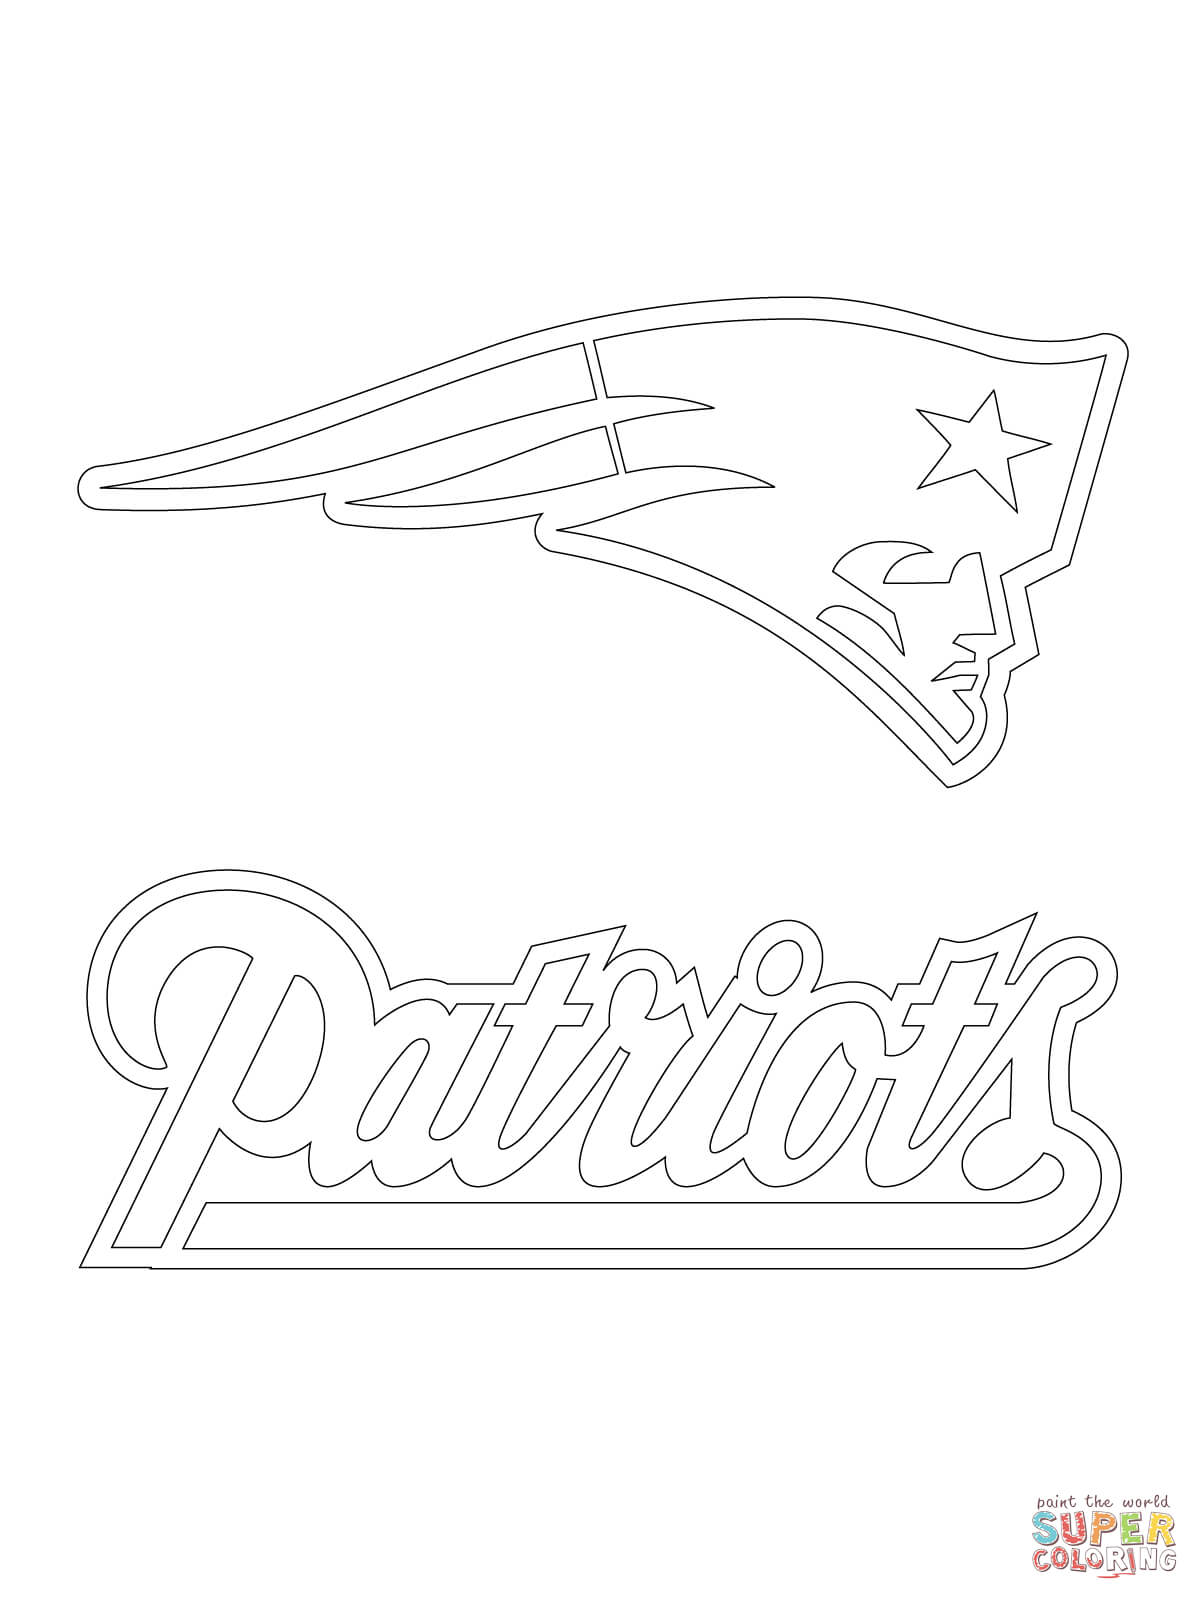 New England Patriots Logo coloring page | Free Printable Coloring ...